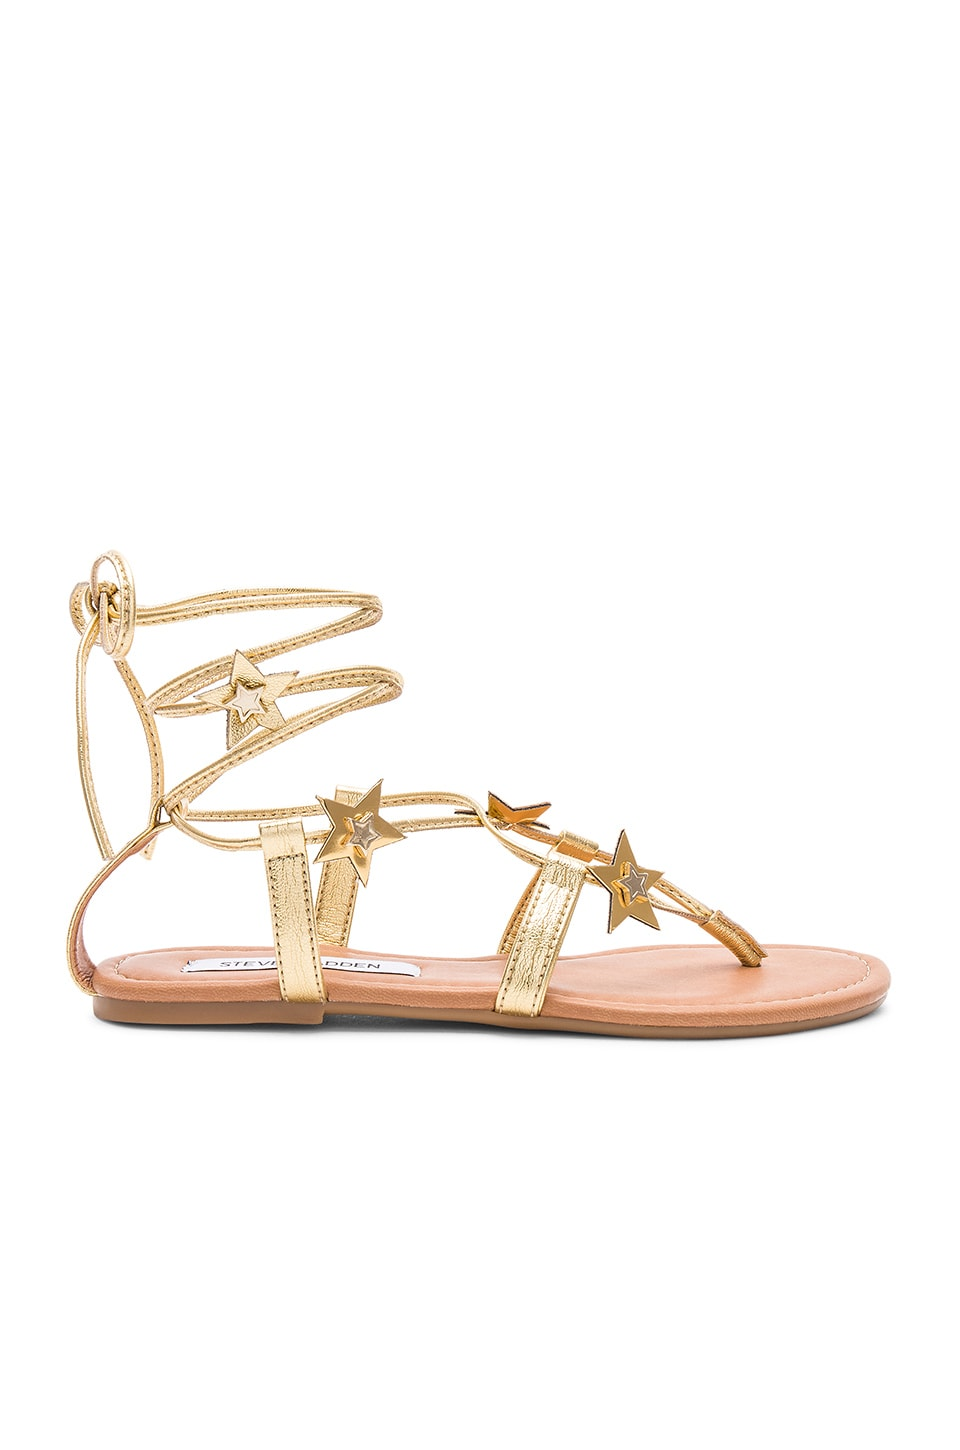 Steve Madden Jupiter Sandals in Gold